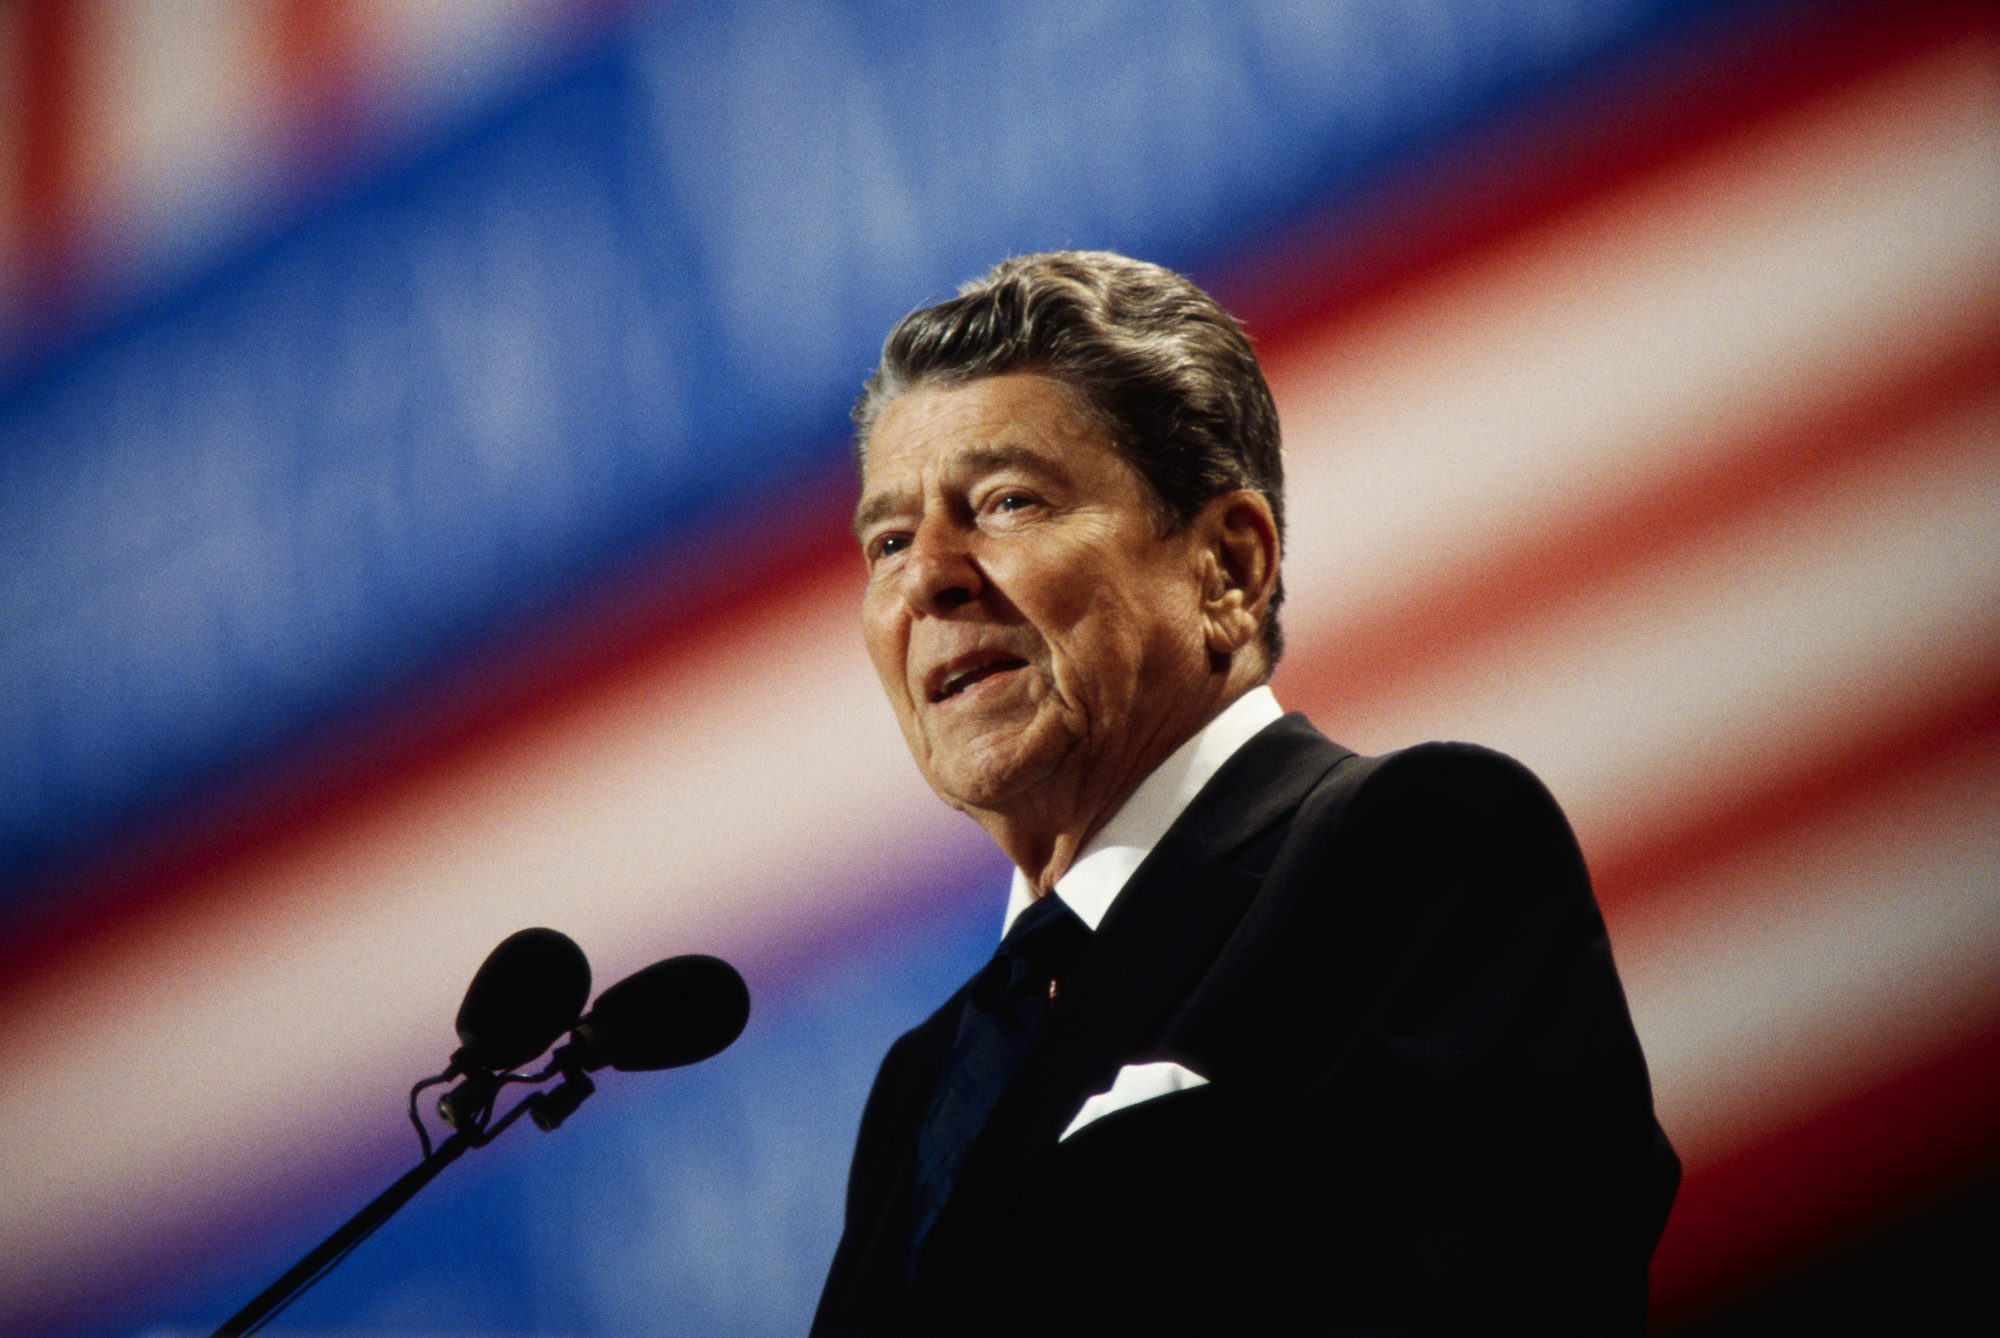 Ronald Reagan Speaking at the Republican National Convention